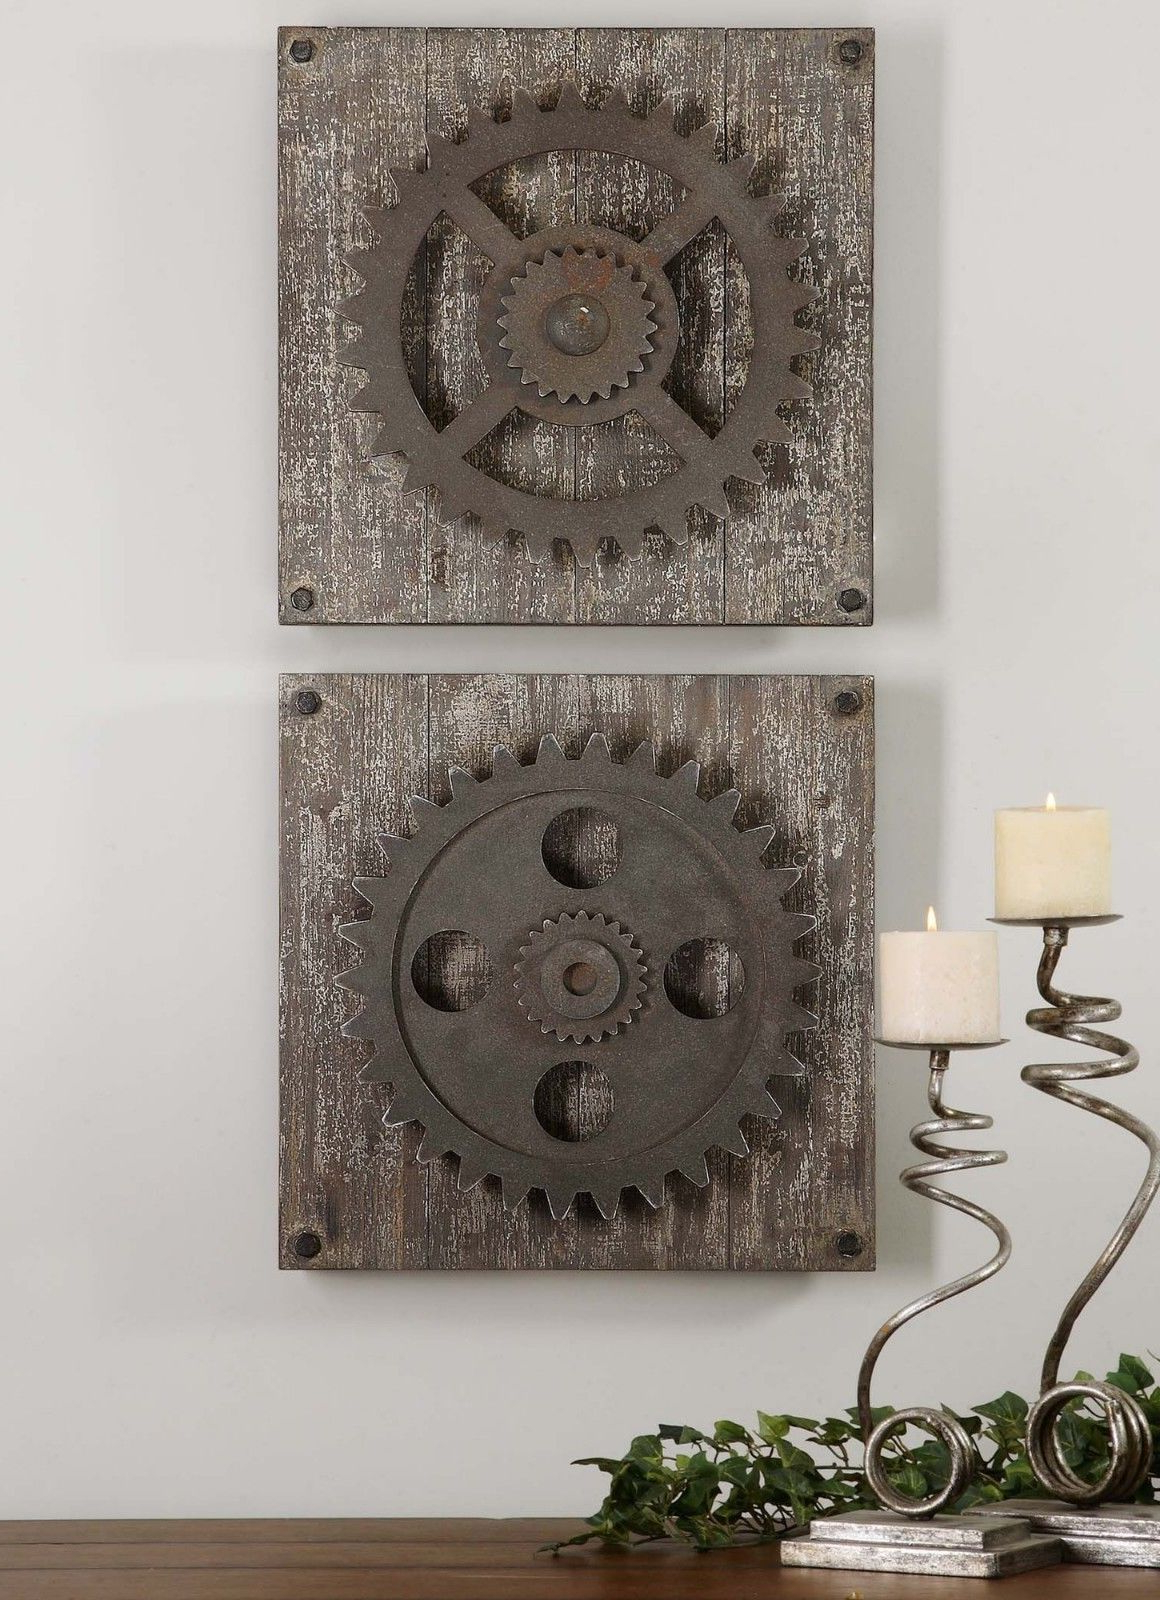 Urban Industrial Loft Steampunk Decor Rusty Gears Cogs 3D Wall Art In Current 4 Piece Metal Wall Plaque Decor Sets (Gallery 10 of 20)